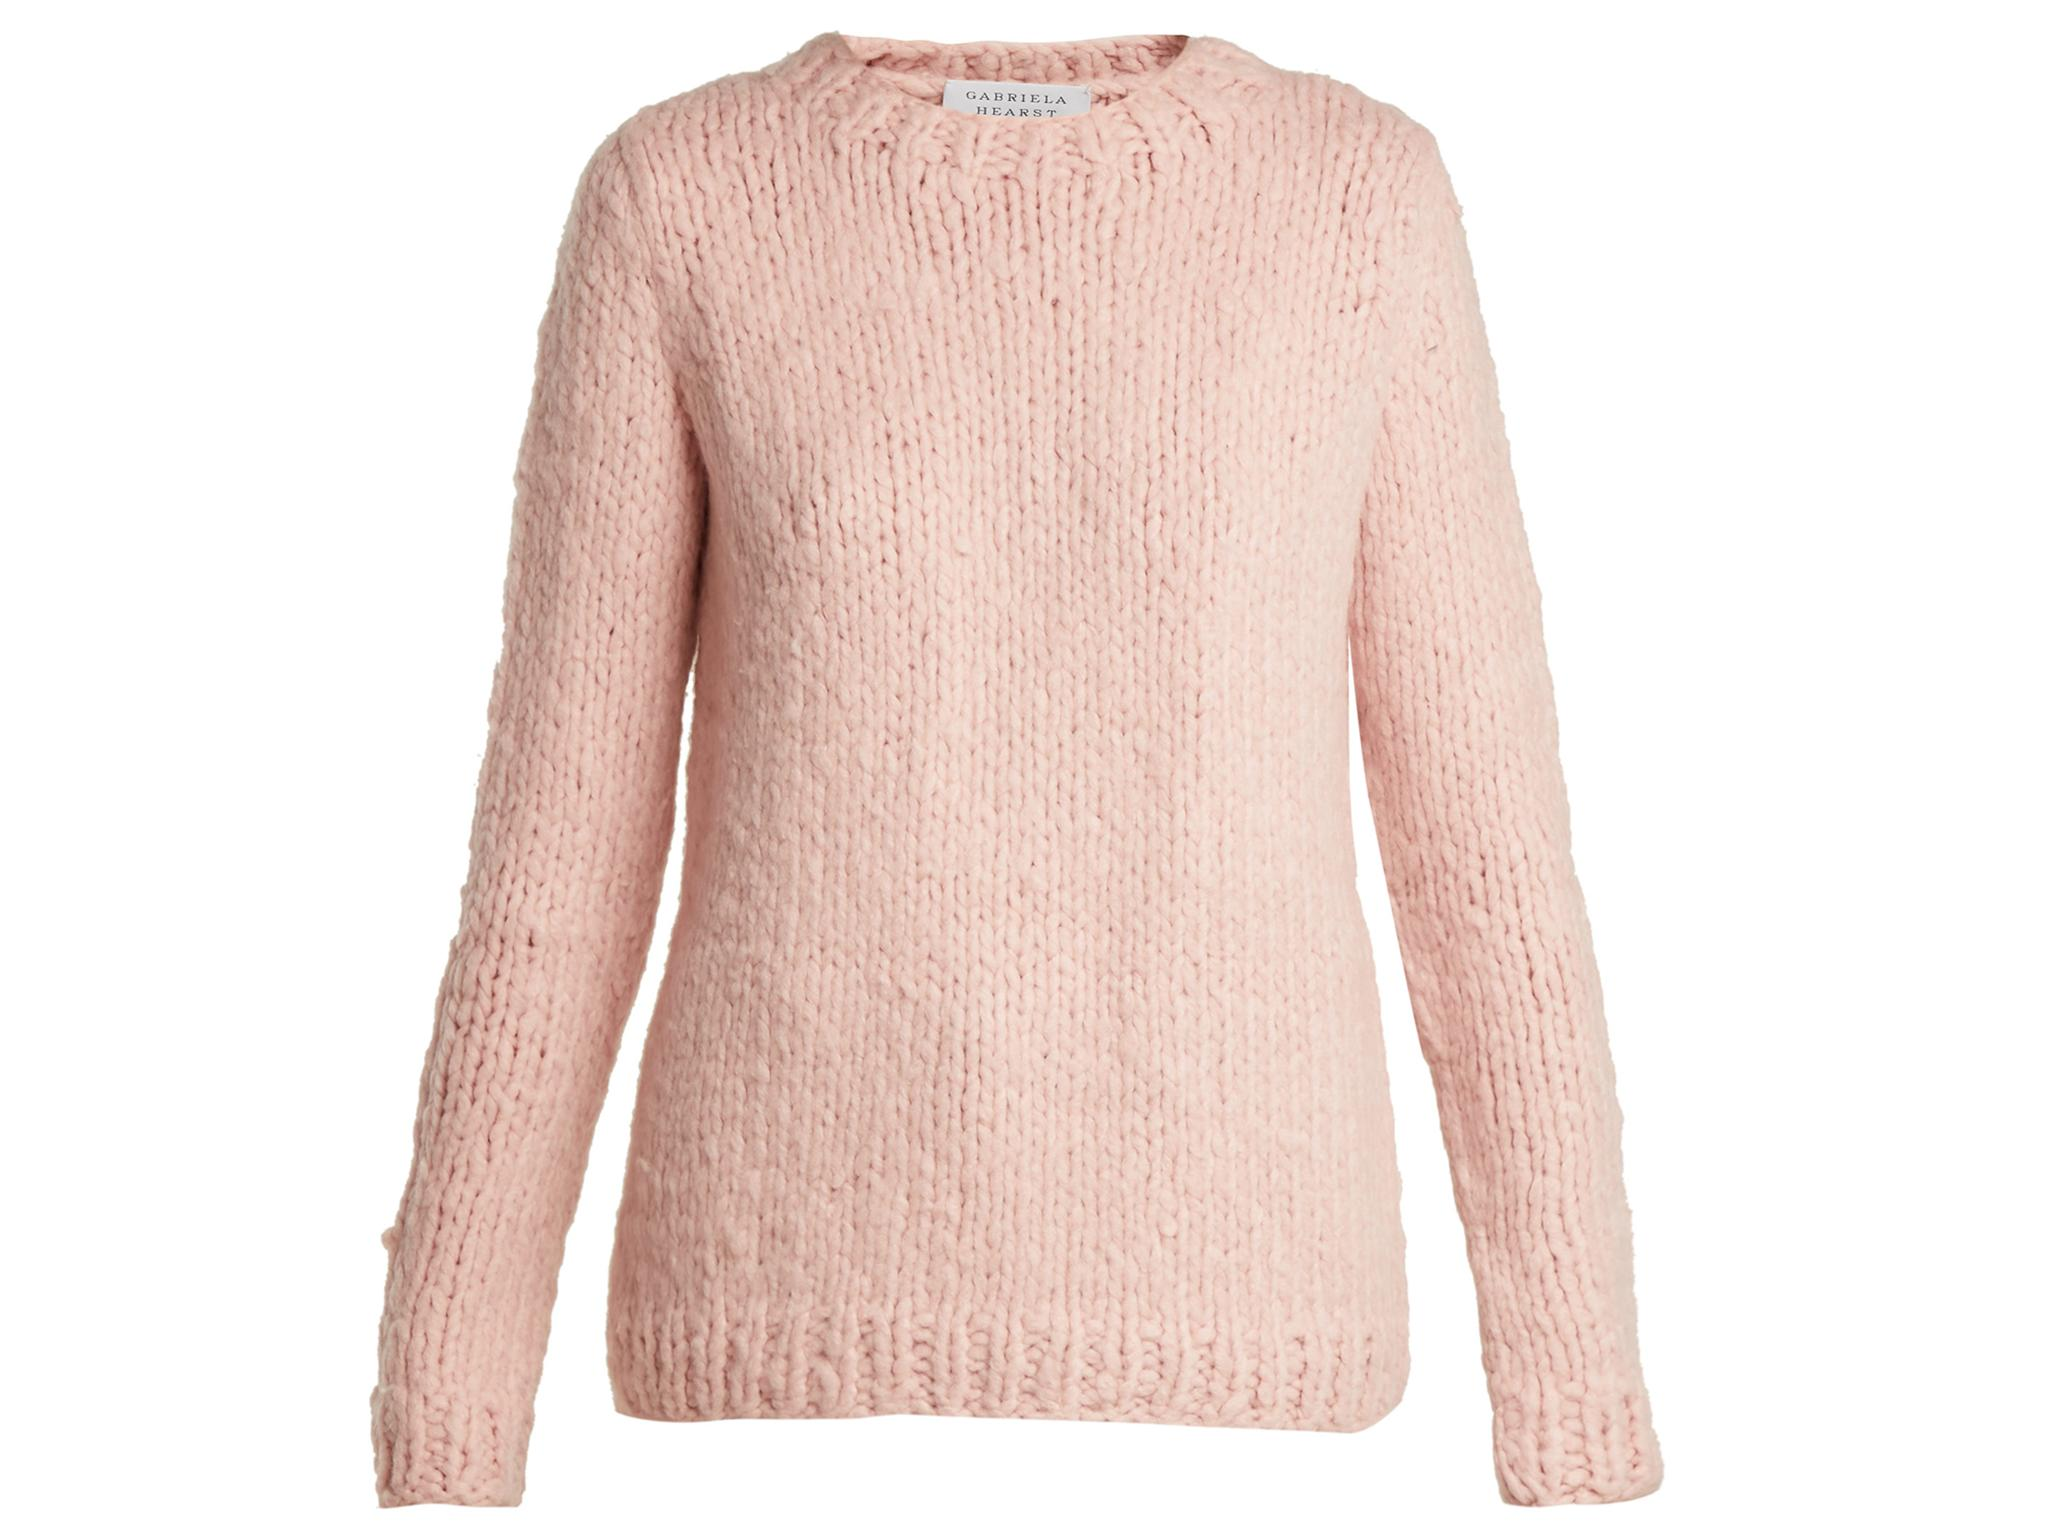 10 best cashmere jumpers for women | The Independent | The